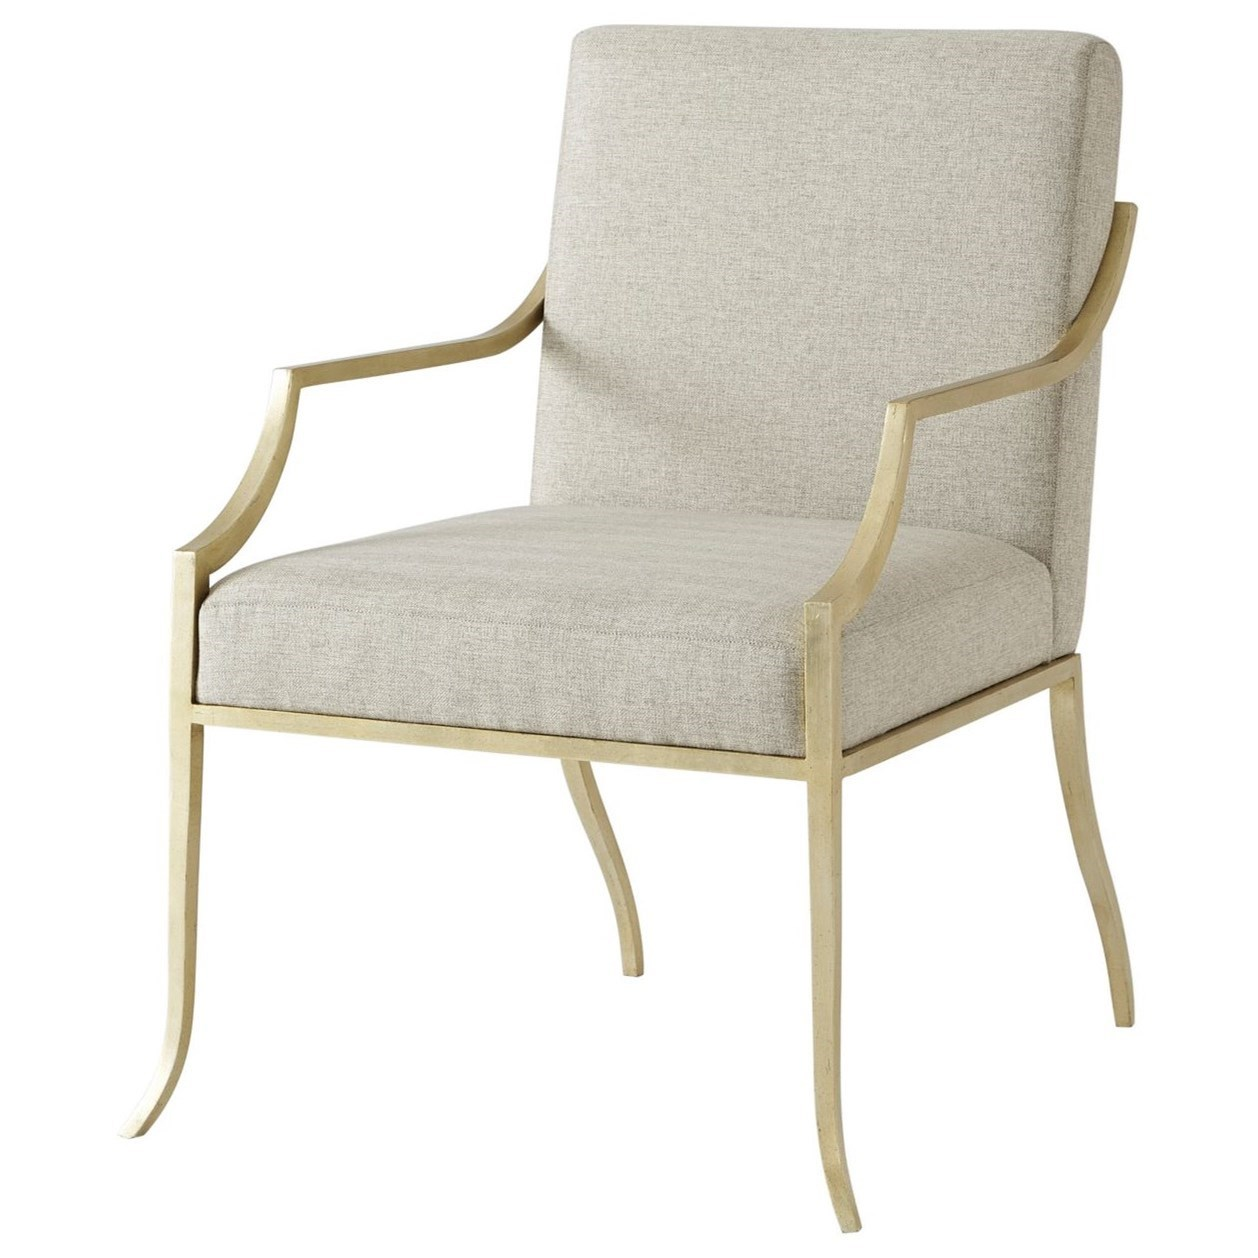 Seating Larissa Accent Chair by Theodore Alexander at Baer's Furniture